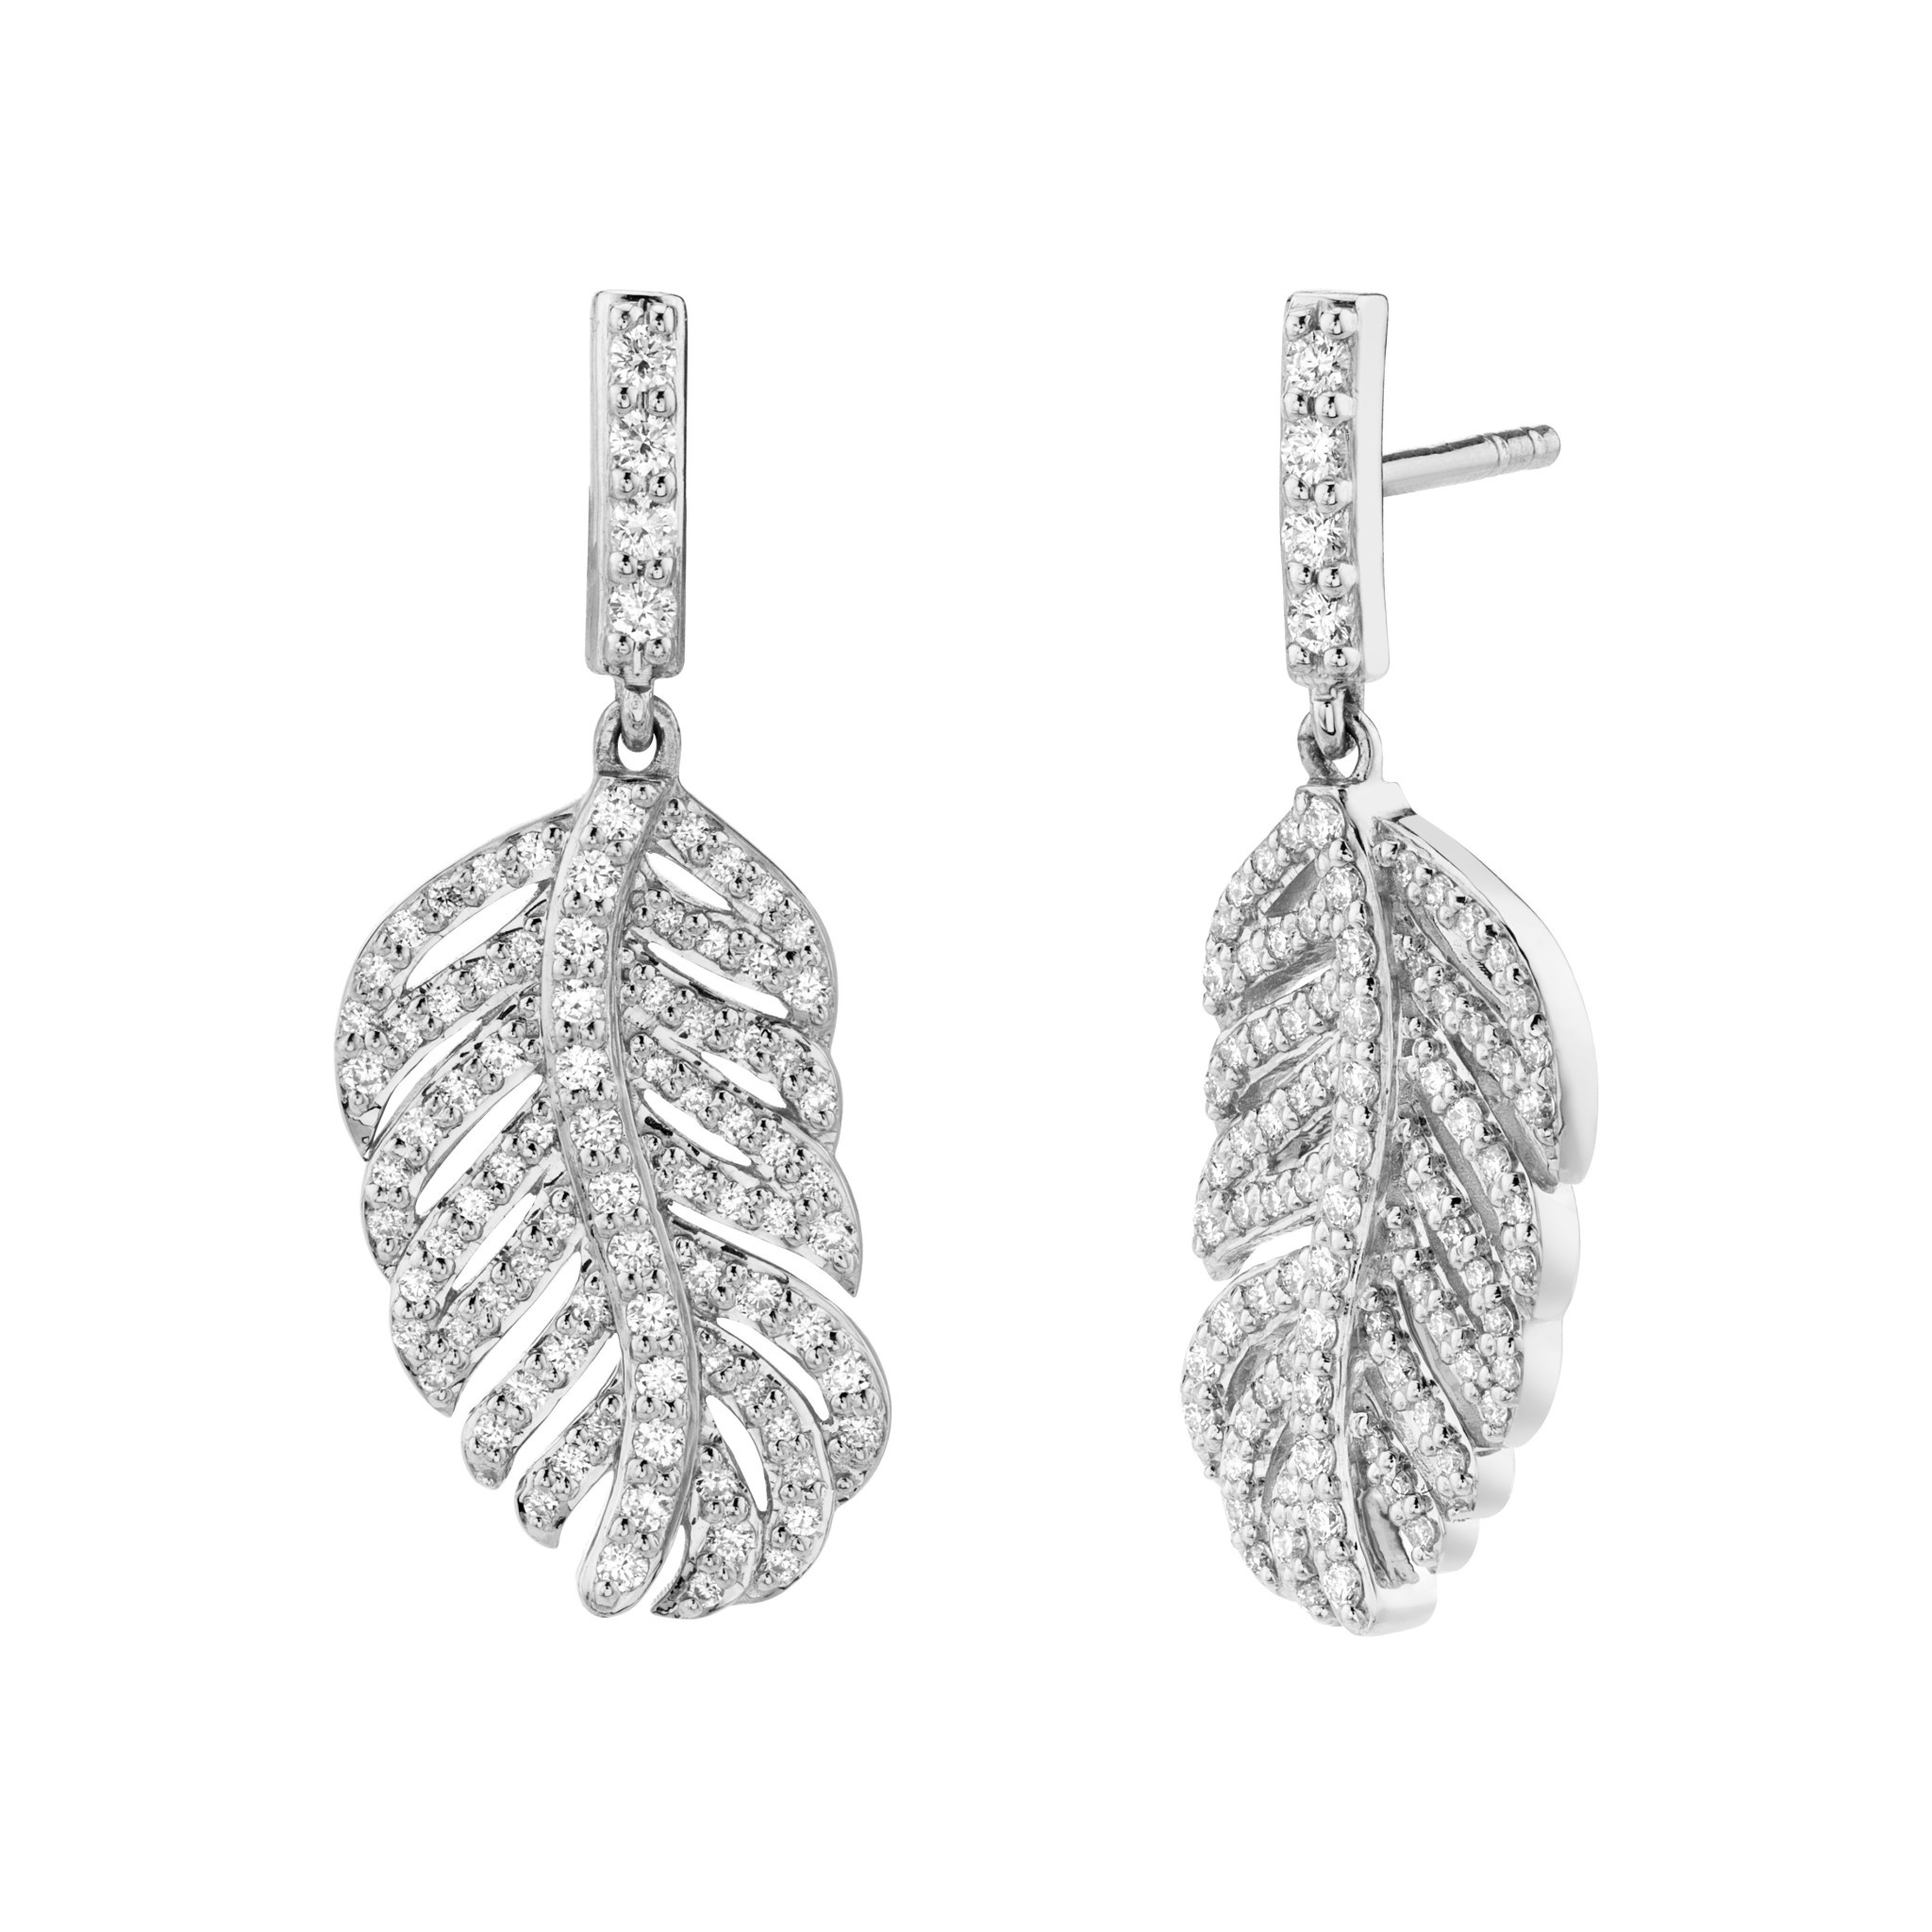 Petite Feather Drop Earring with White Diamond Detail